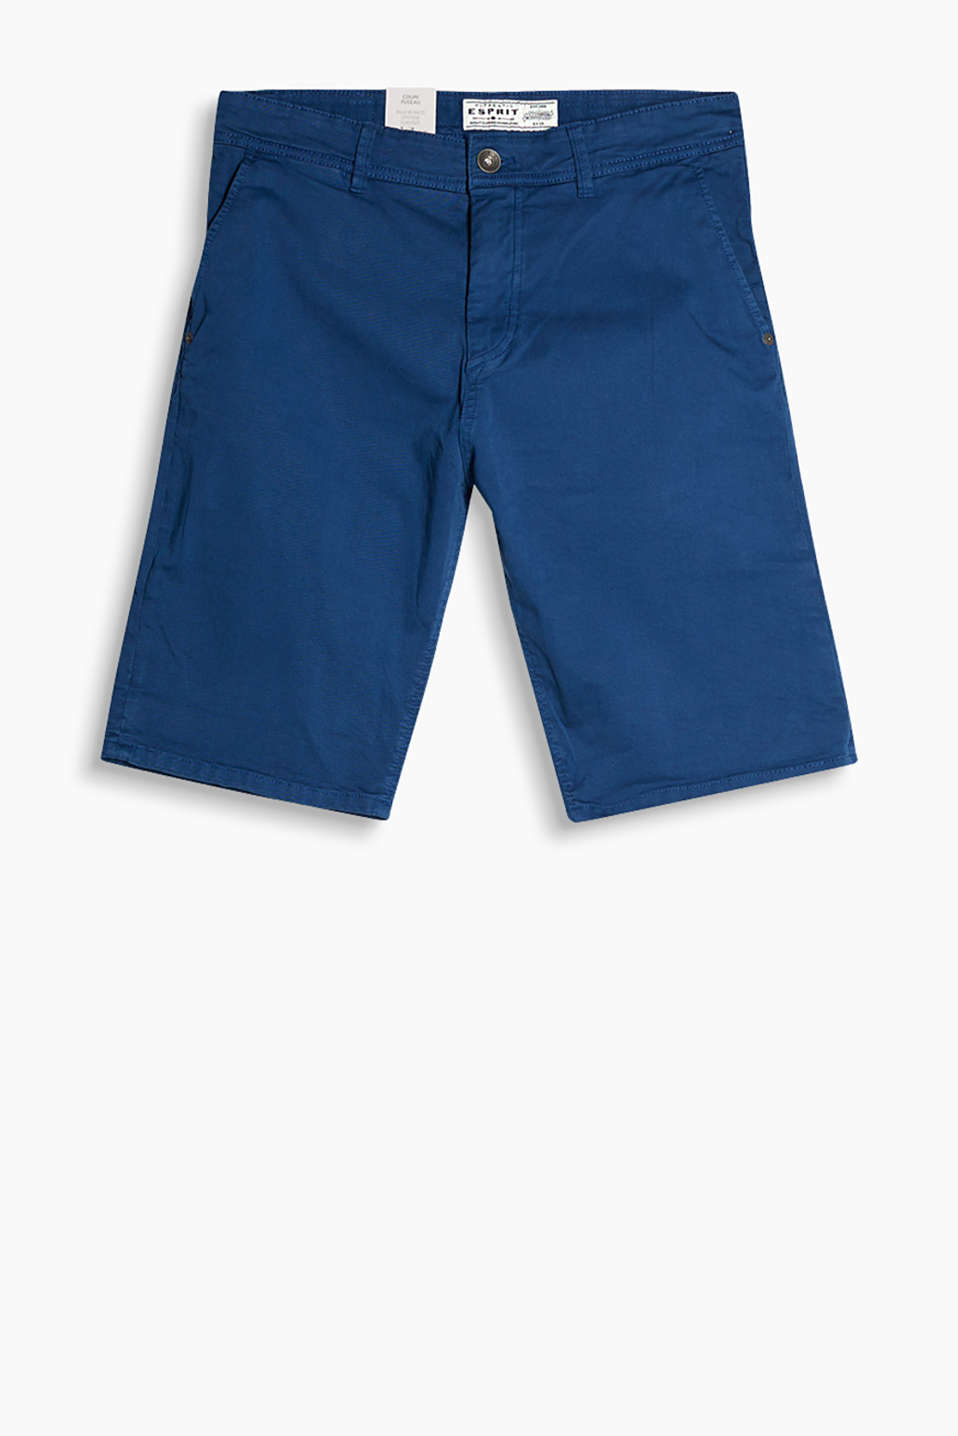 5-pocket shorts in 100% cotton with added stretch for comfort